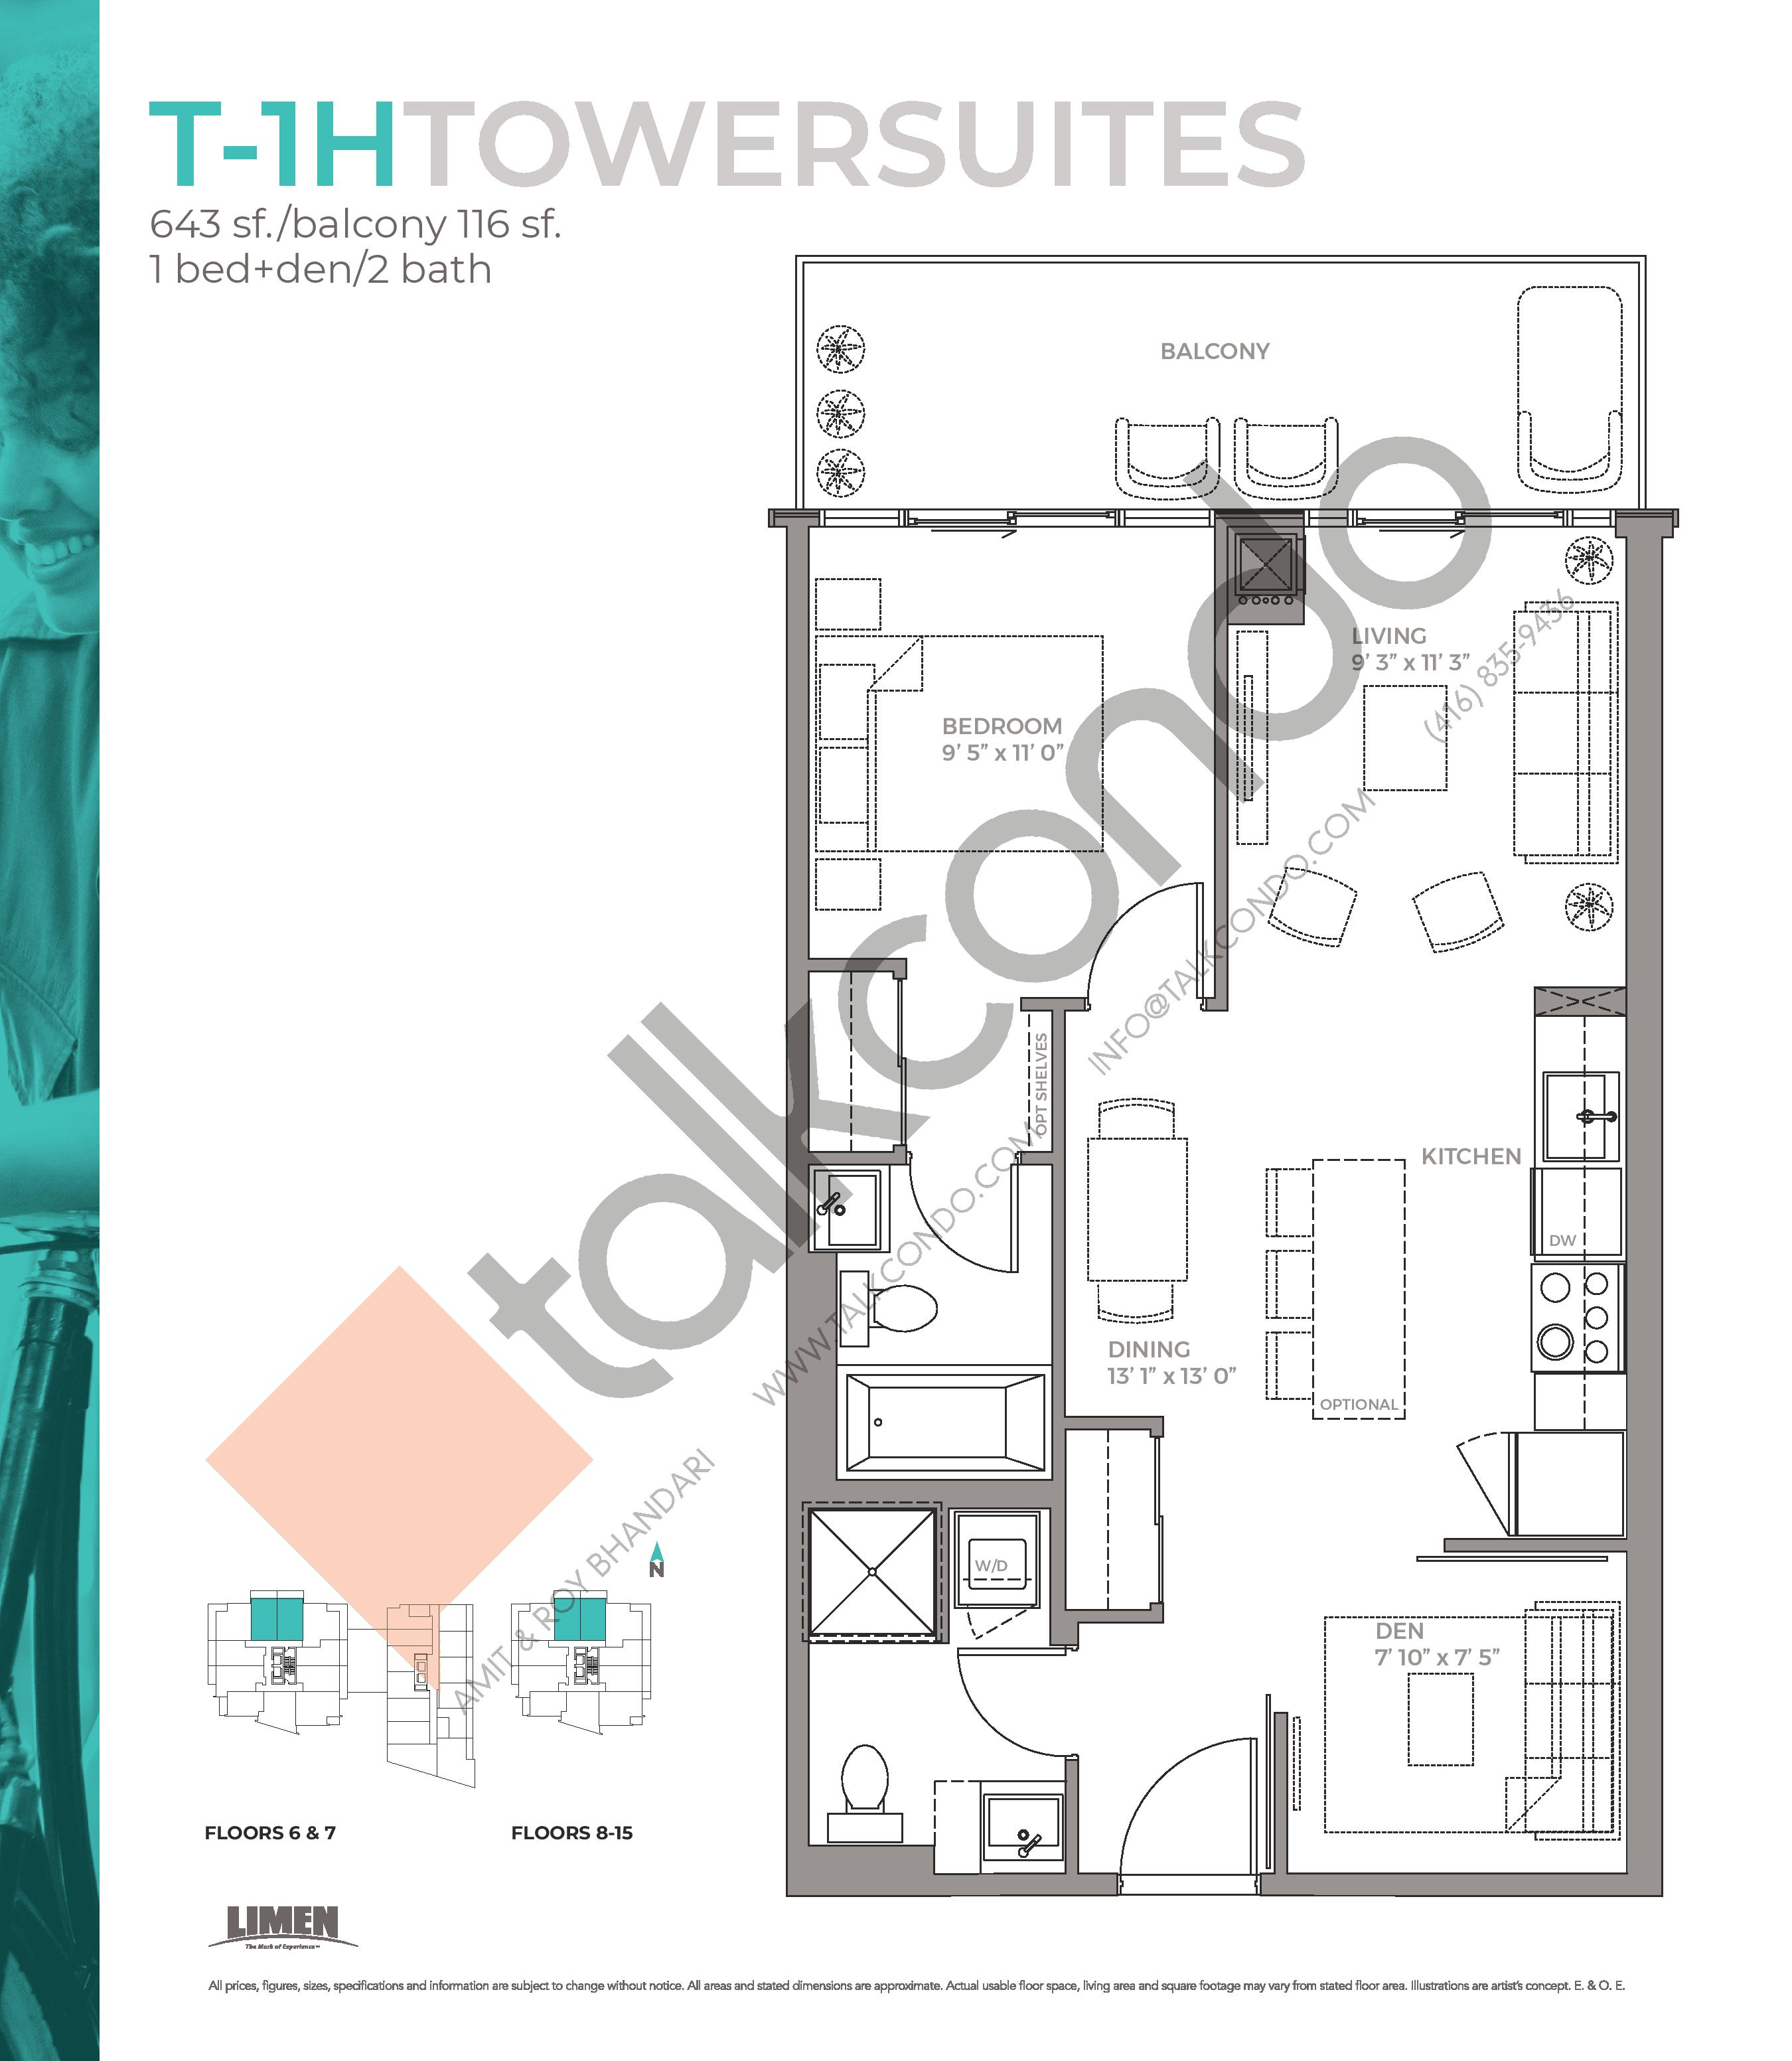 T-1H Towersuites Floor Plan at East Junction Condos - 643 sq.ft